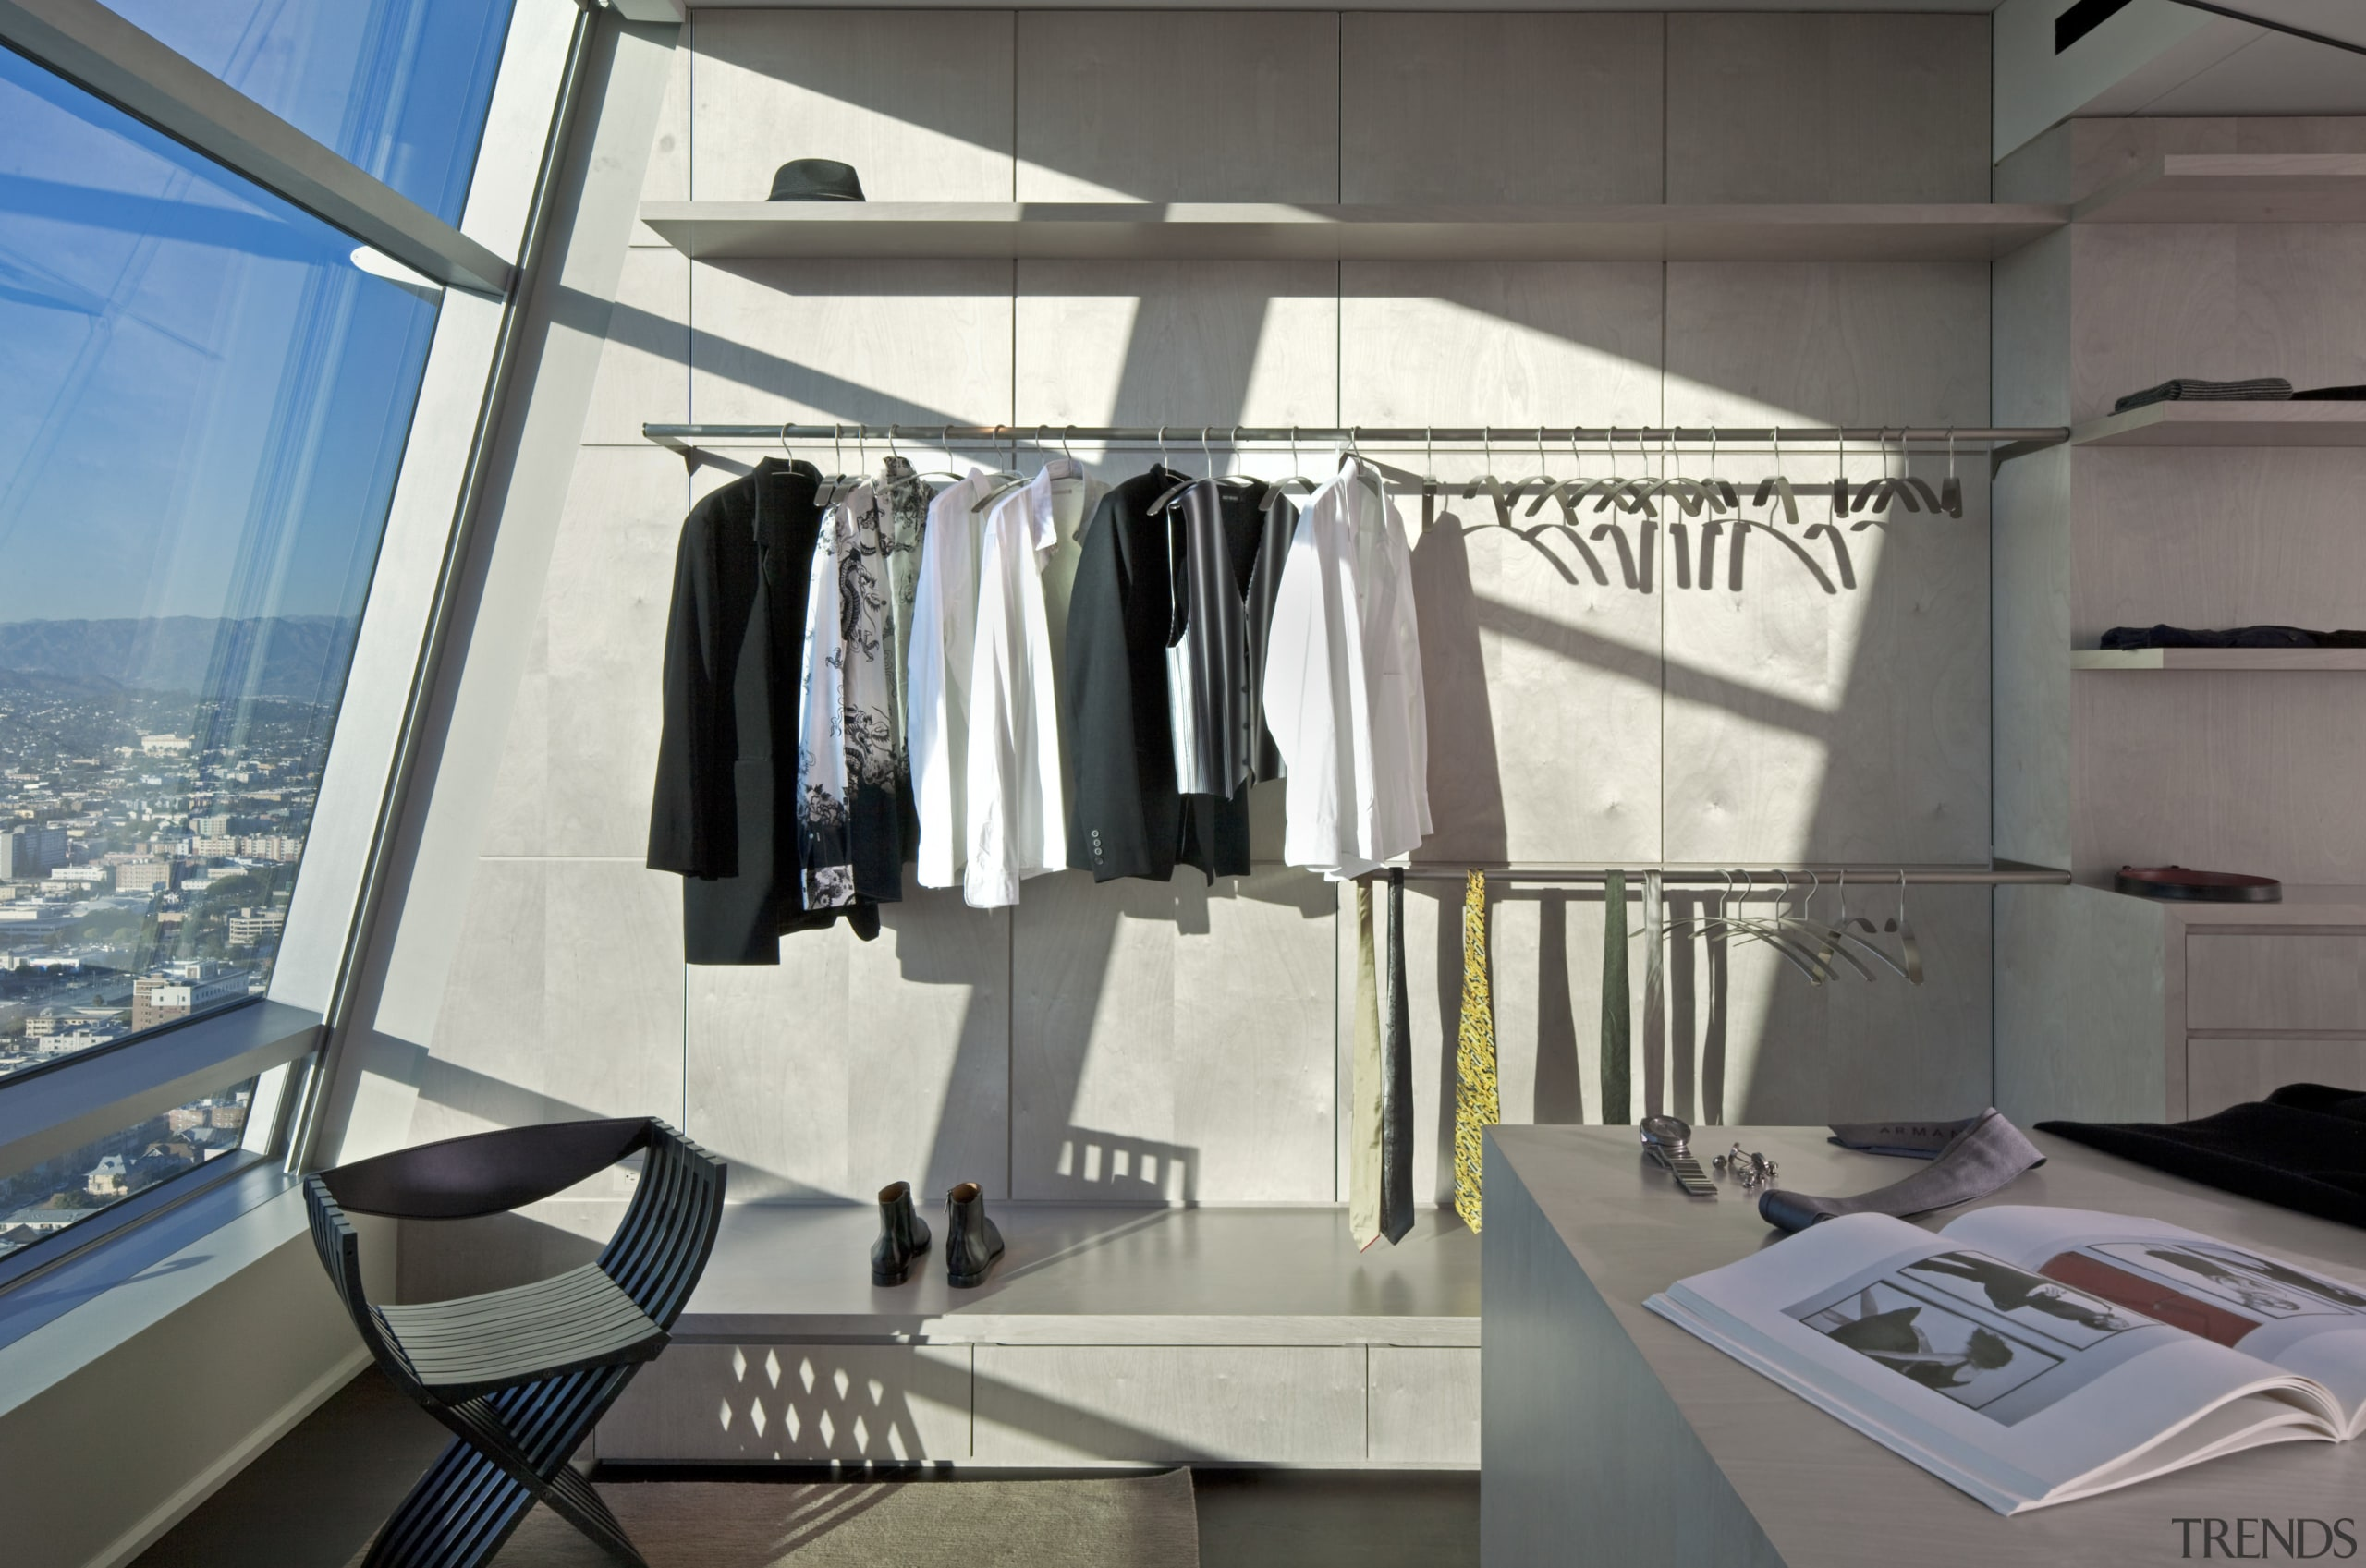 The dressing room in the master suite resembles product design, gray, white